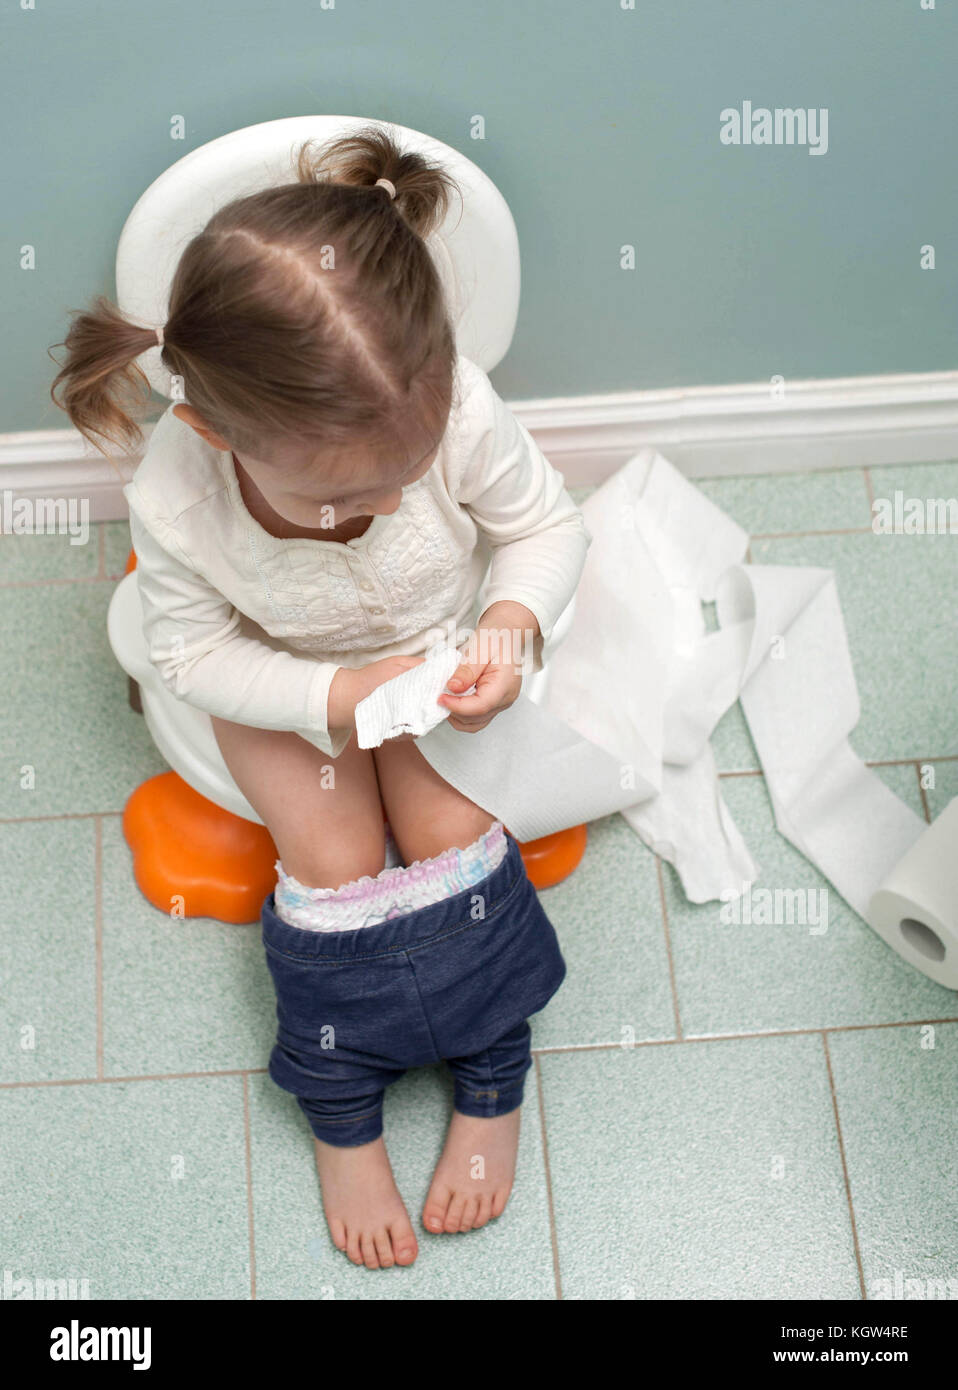 23 Tips for Potty Training Your Toddler BEFORE 2 Years Old